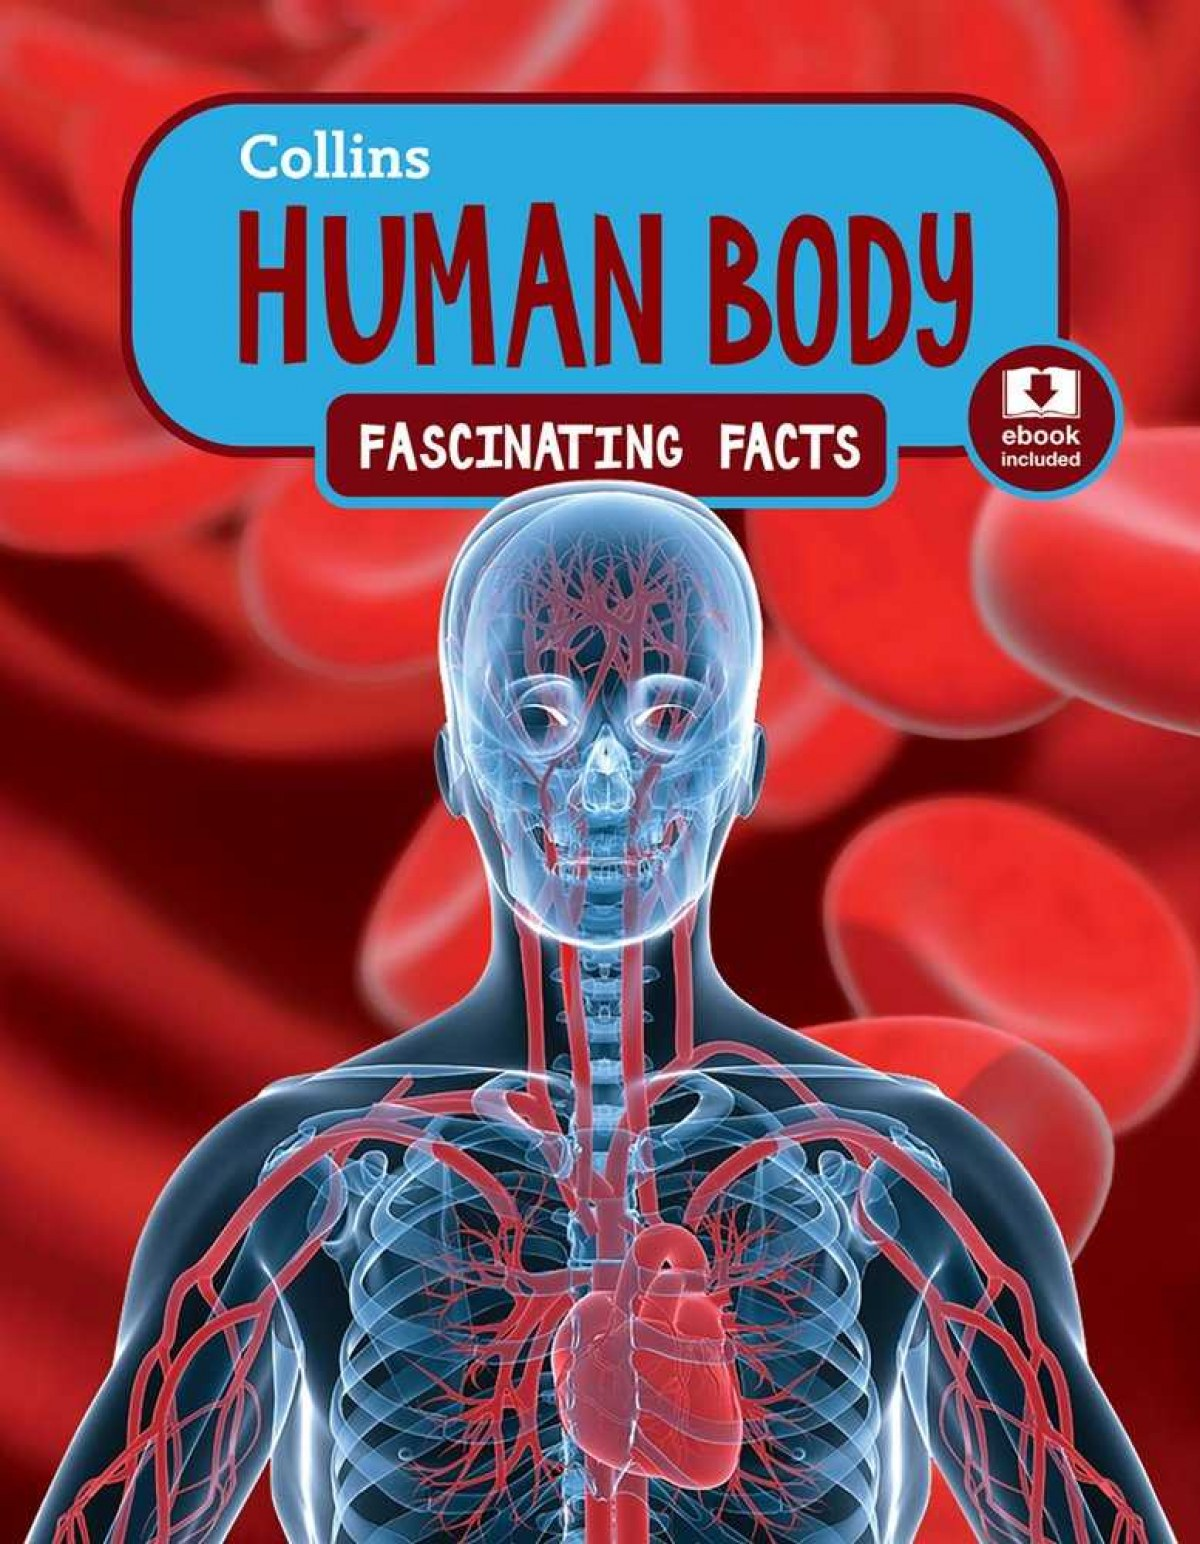 THE HUMAN BODY.(FASCINATING FACTS)